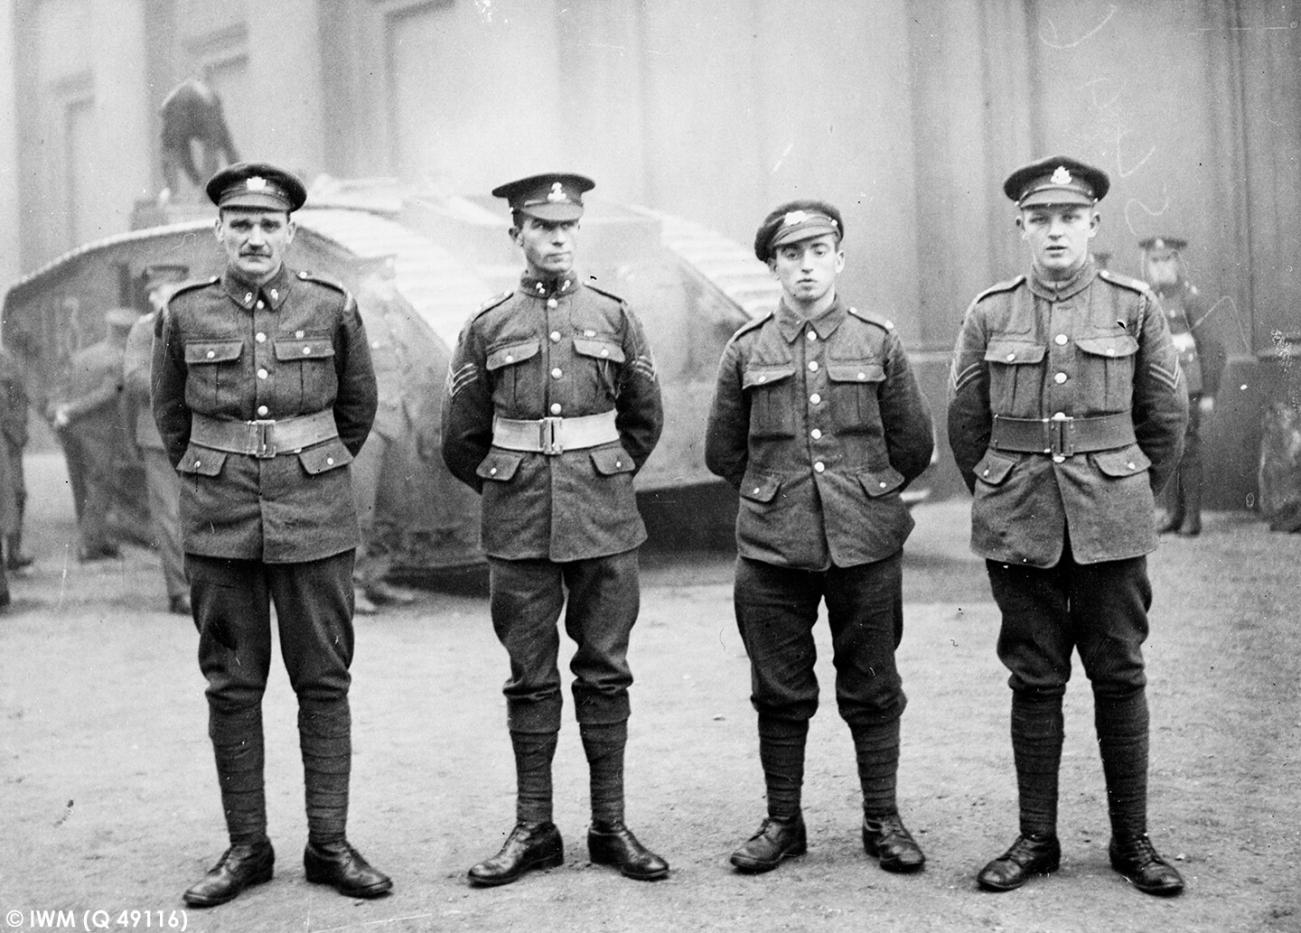 Four First World War soldiers stood at ease in a line, with a Churchill tank in the background